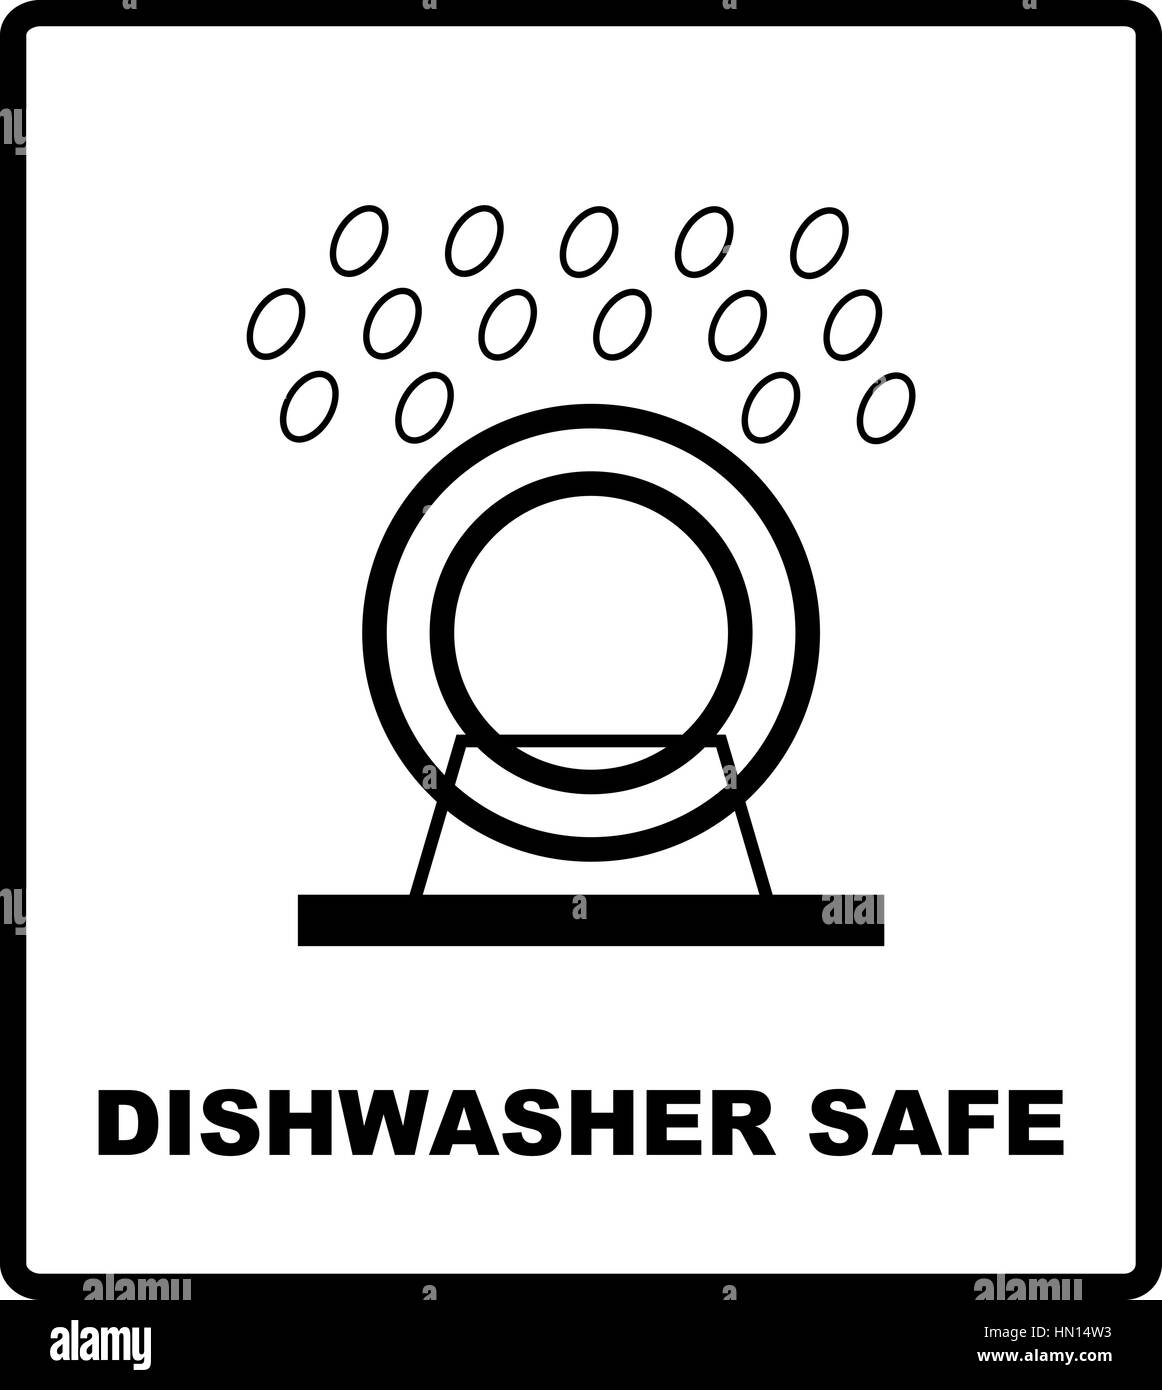 Dishwasher safe symbol isolated dishwasher safe sign isolated dishwasher safe symbol isolated dishwasher safe sign isolated vector illustration symbol for use in package layout design for use on cardboard box biocorpaavc Images